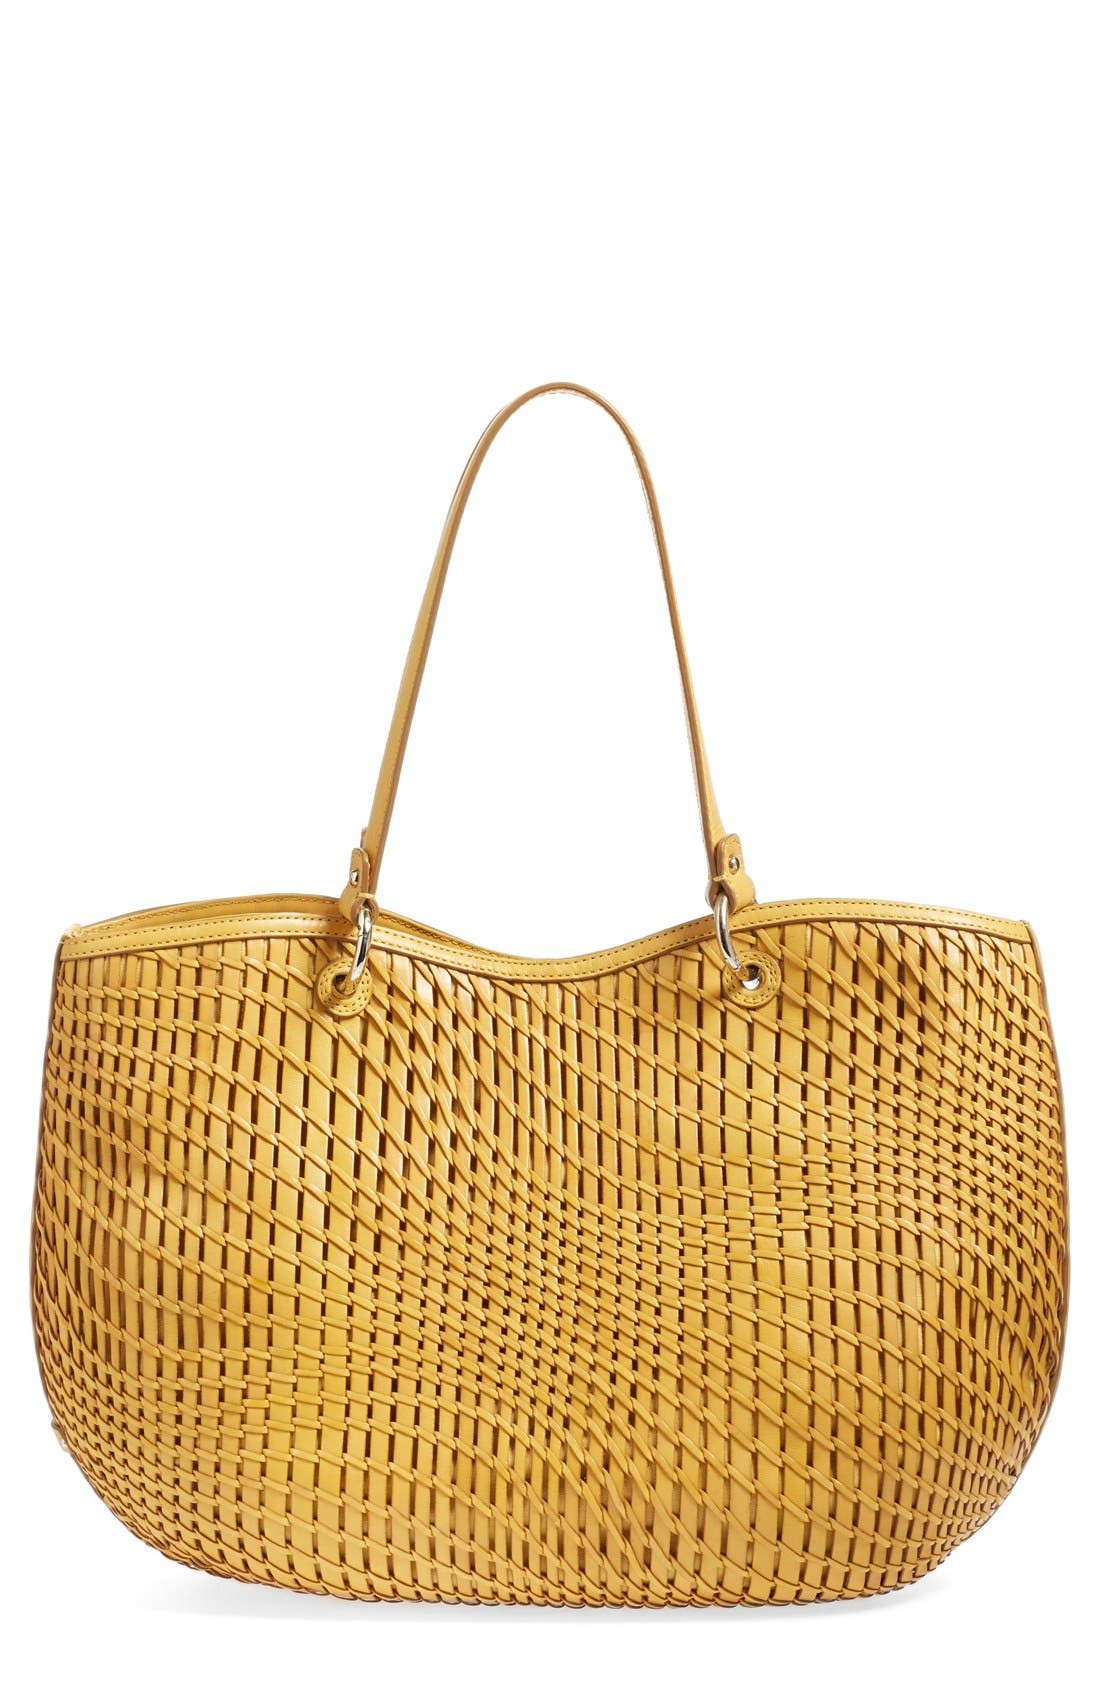 Alternate Image 1 Selected - Cole Haan 'Genevieve' Open Weave Leather Tote